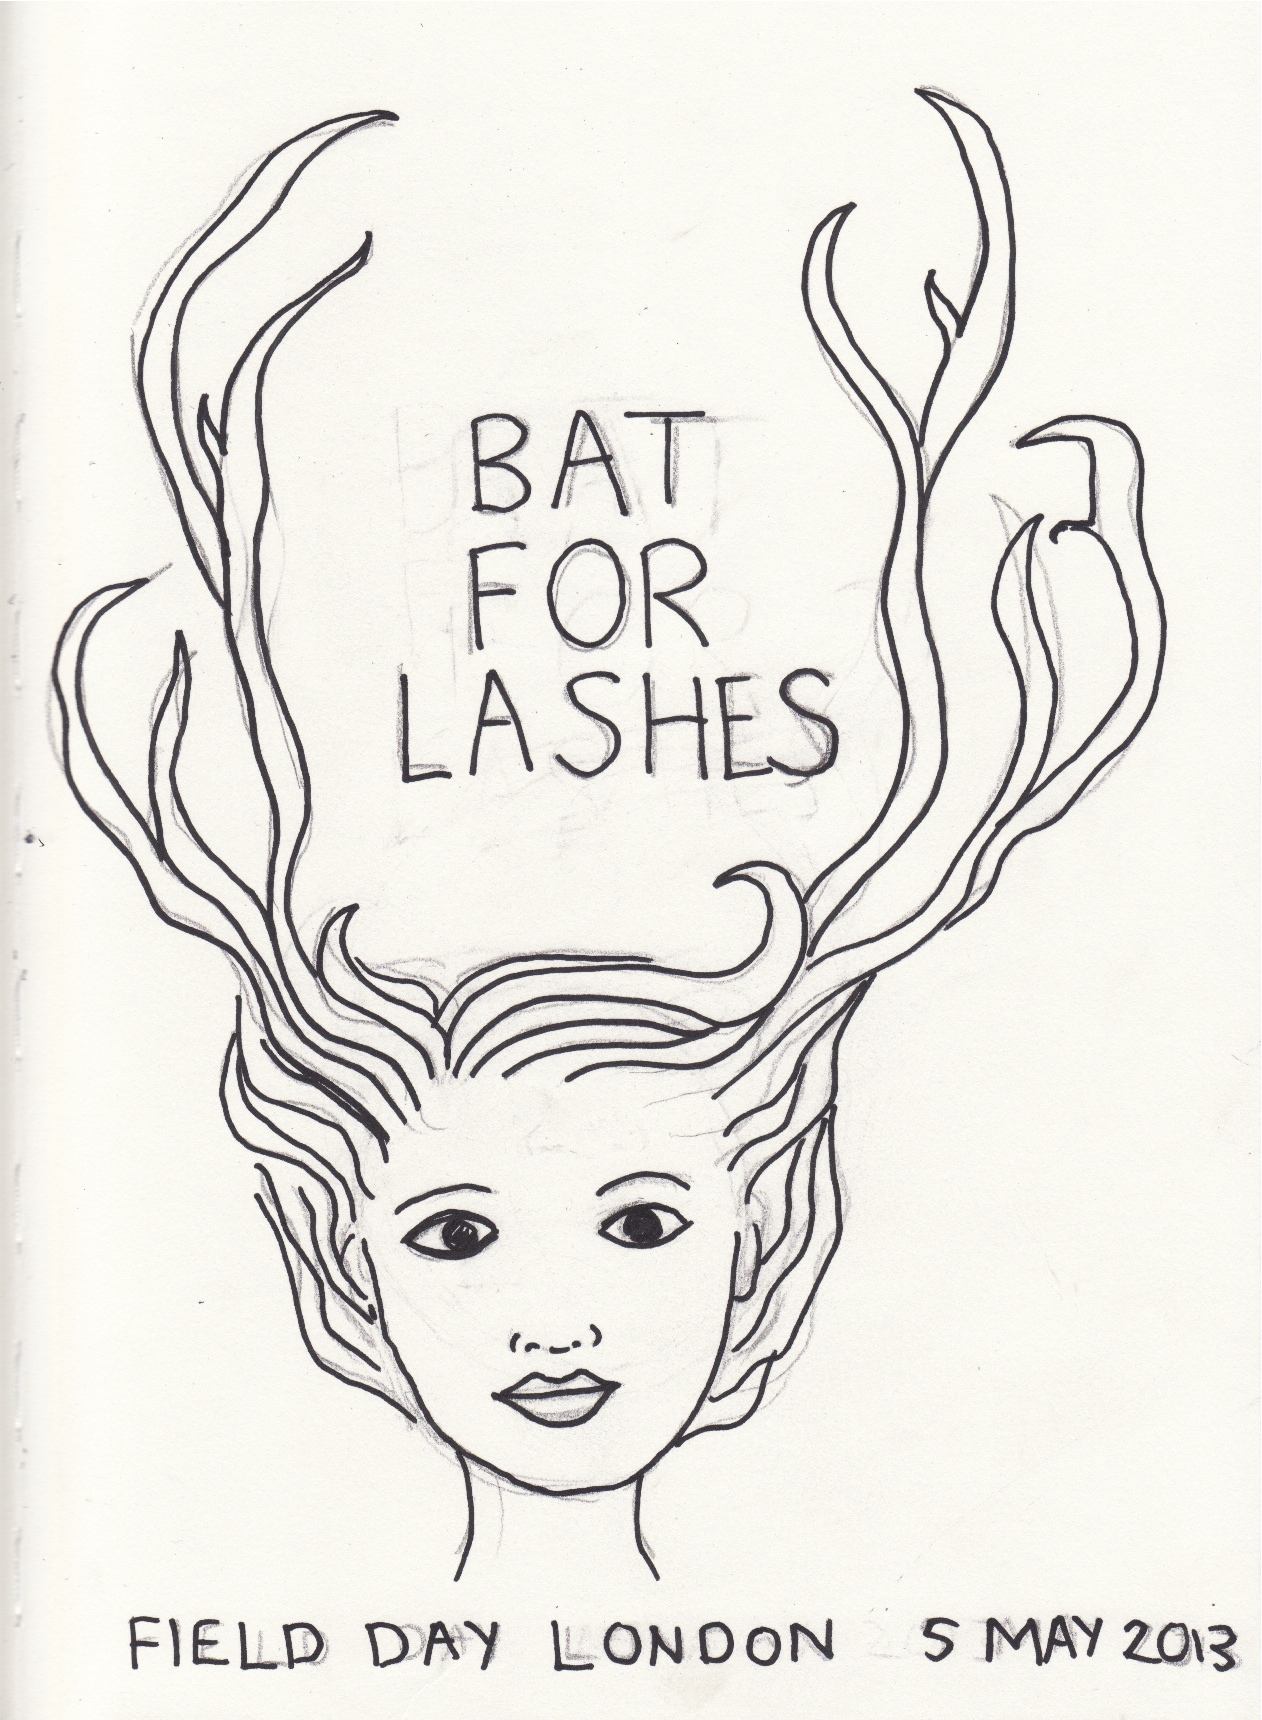 Bat for Lashes - Field day 2013 - image 4 - student project